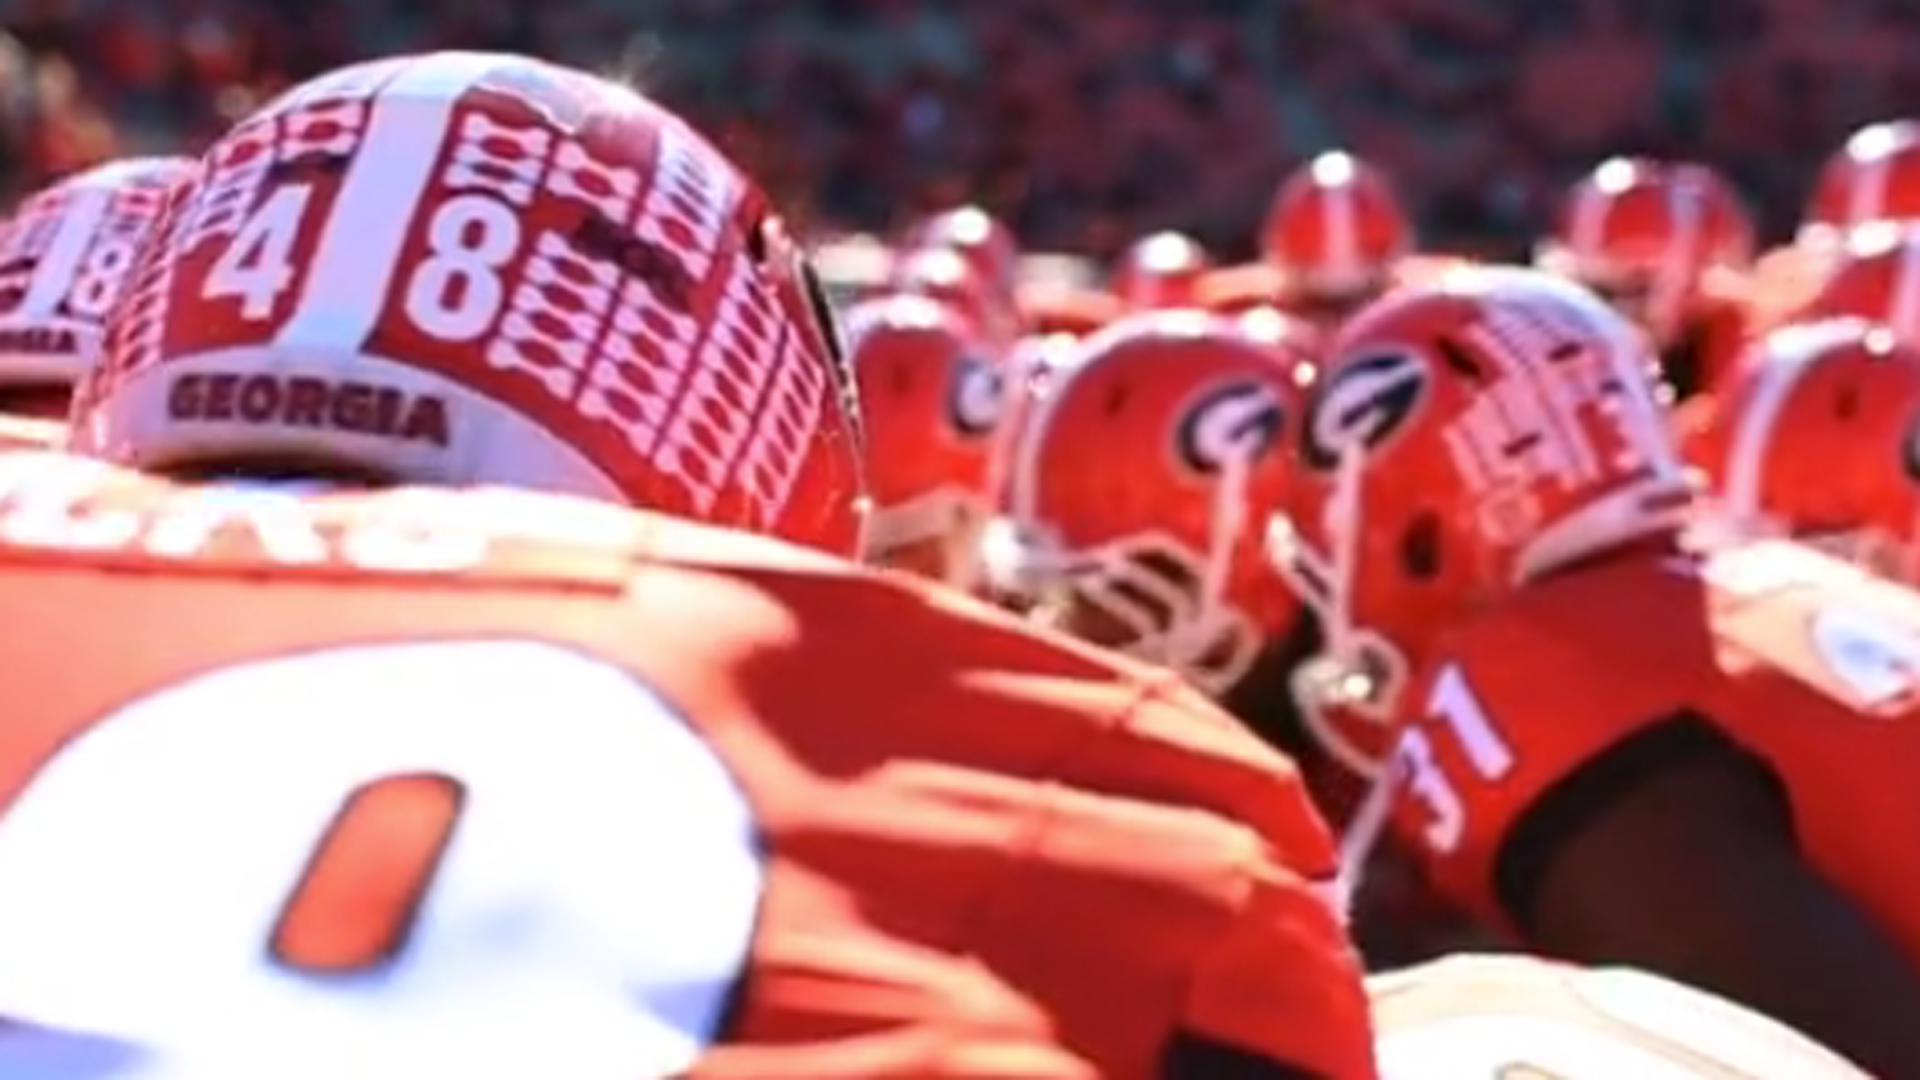 Get ready for Georgia football with this post-apocalyptic hype video